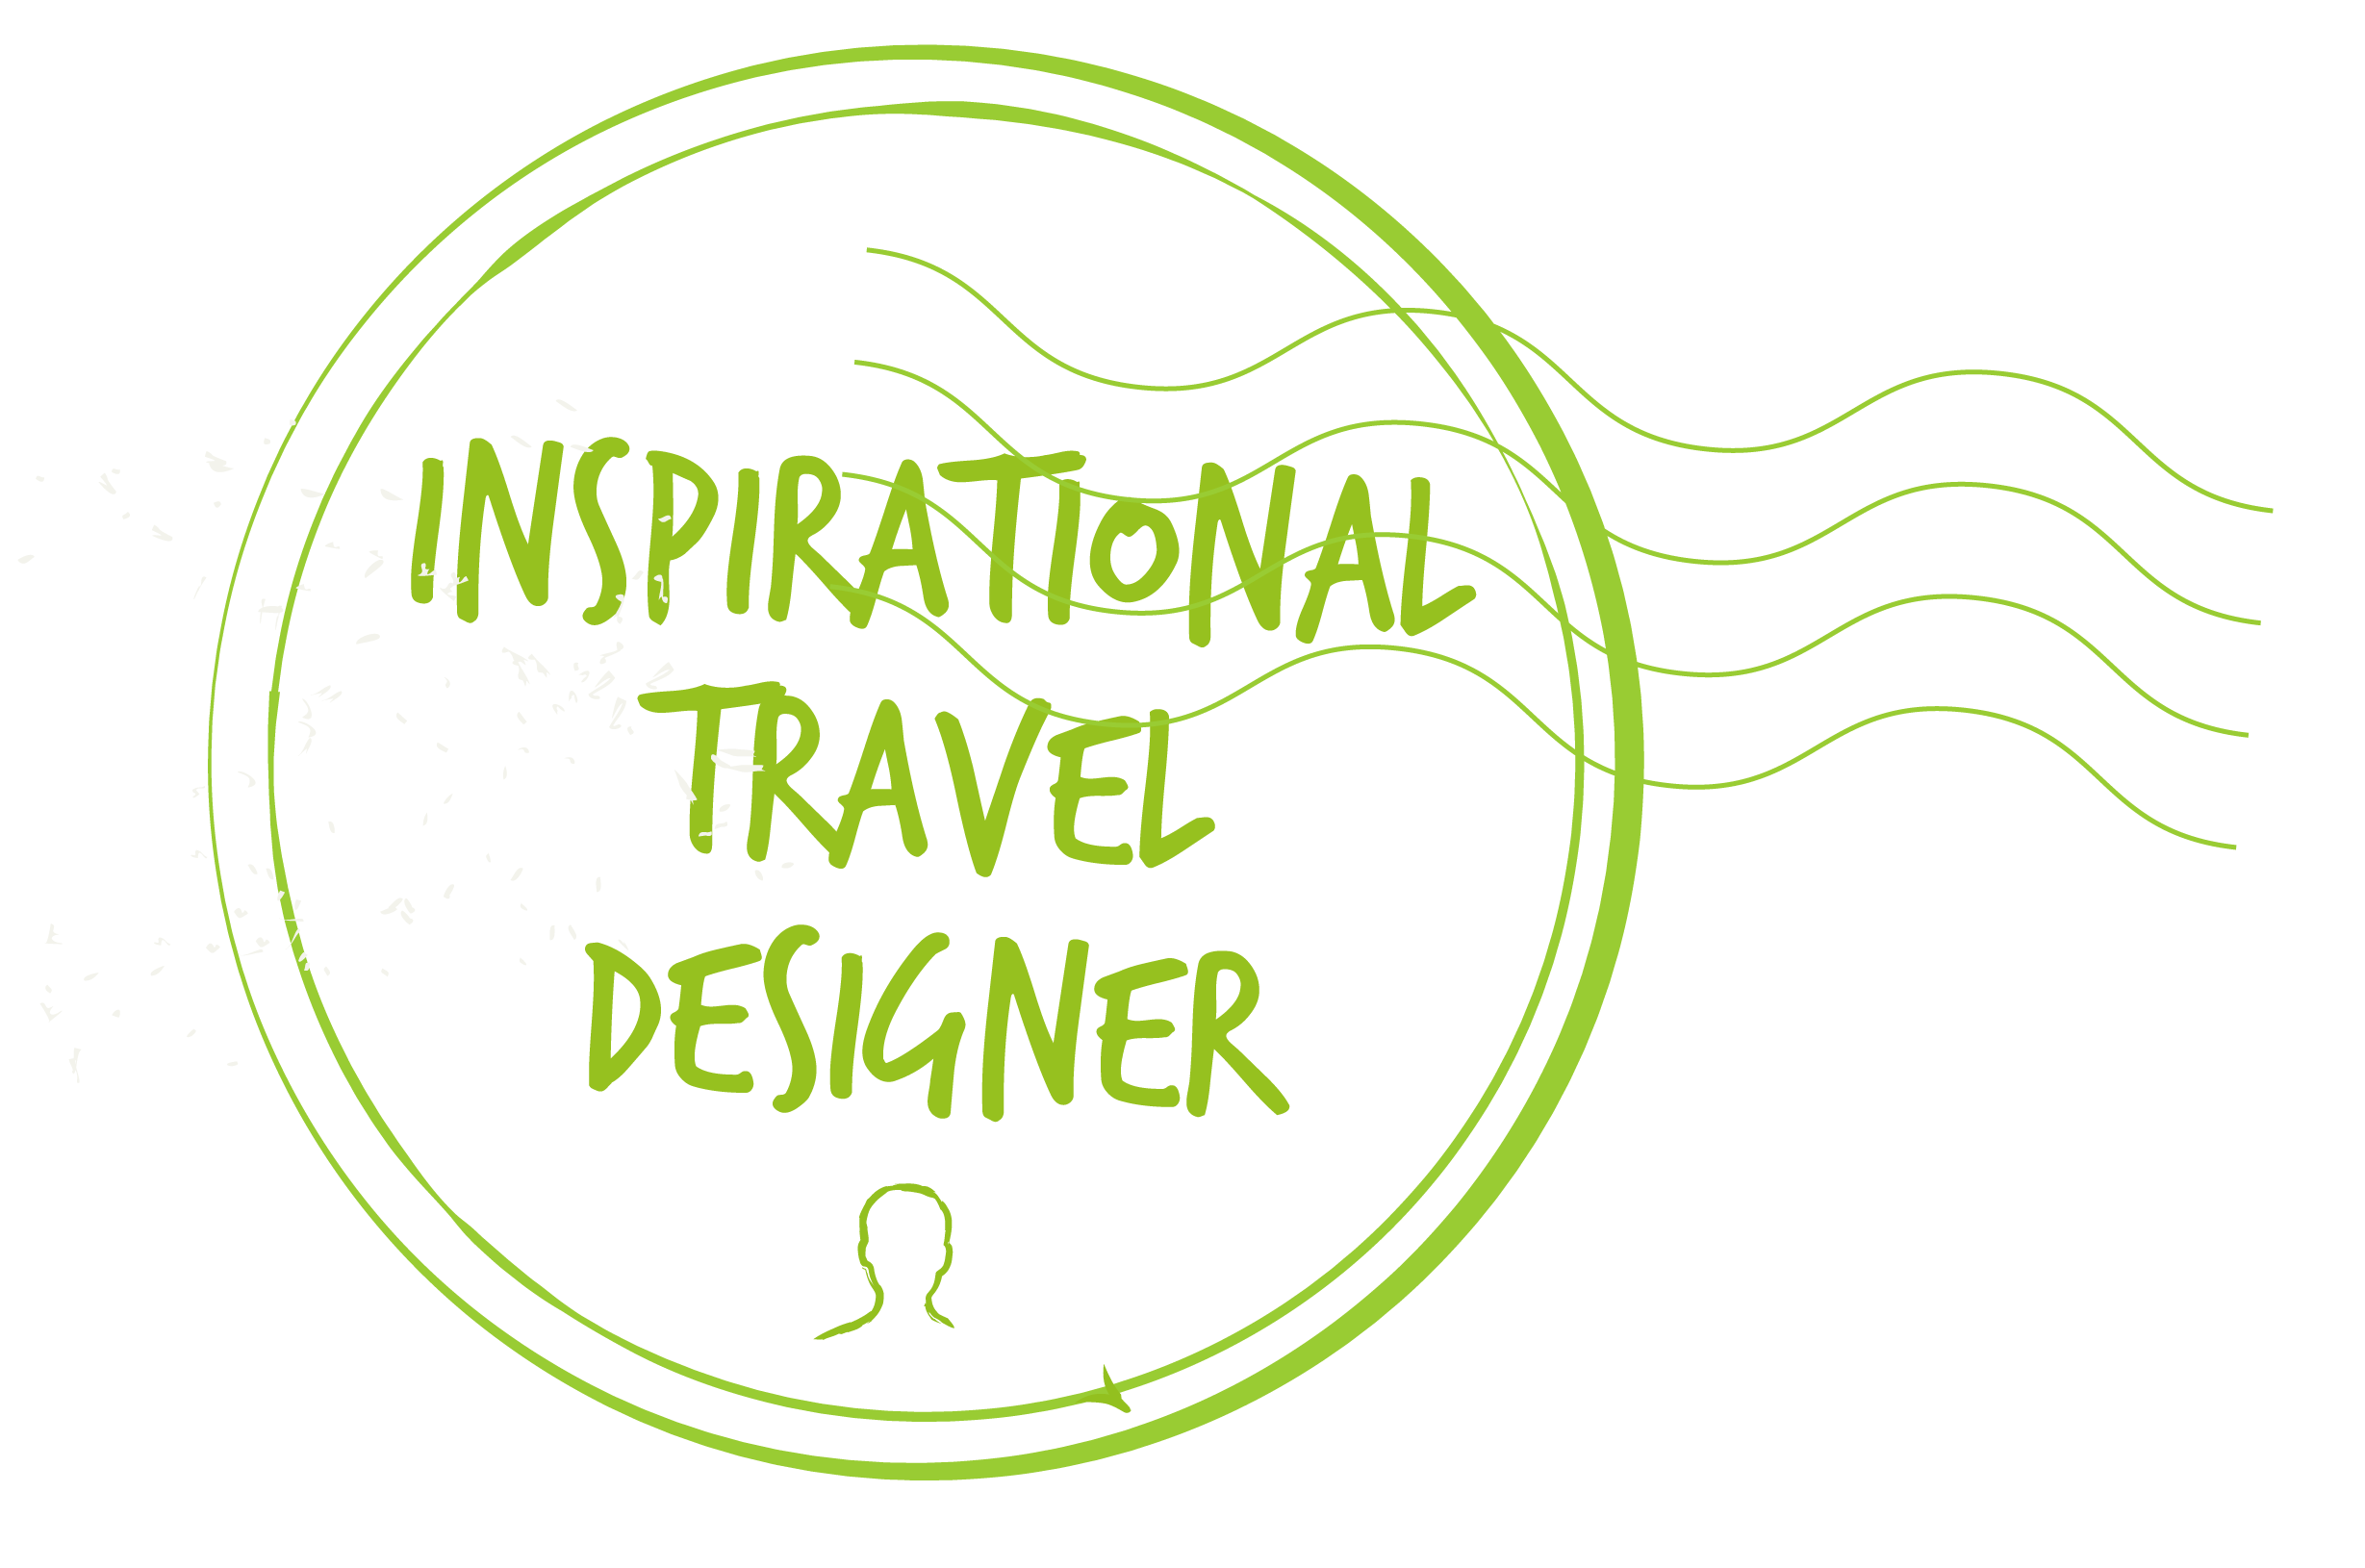 Inspirational Travel Designer, Destinazione Umana